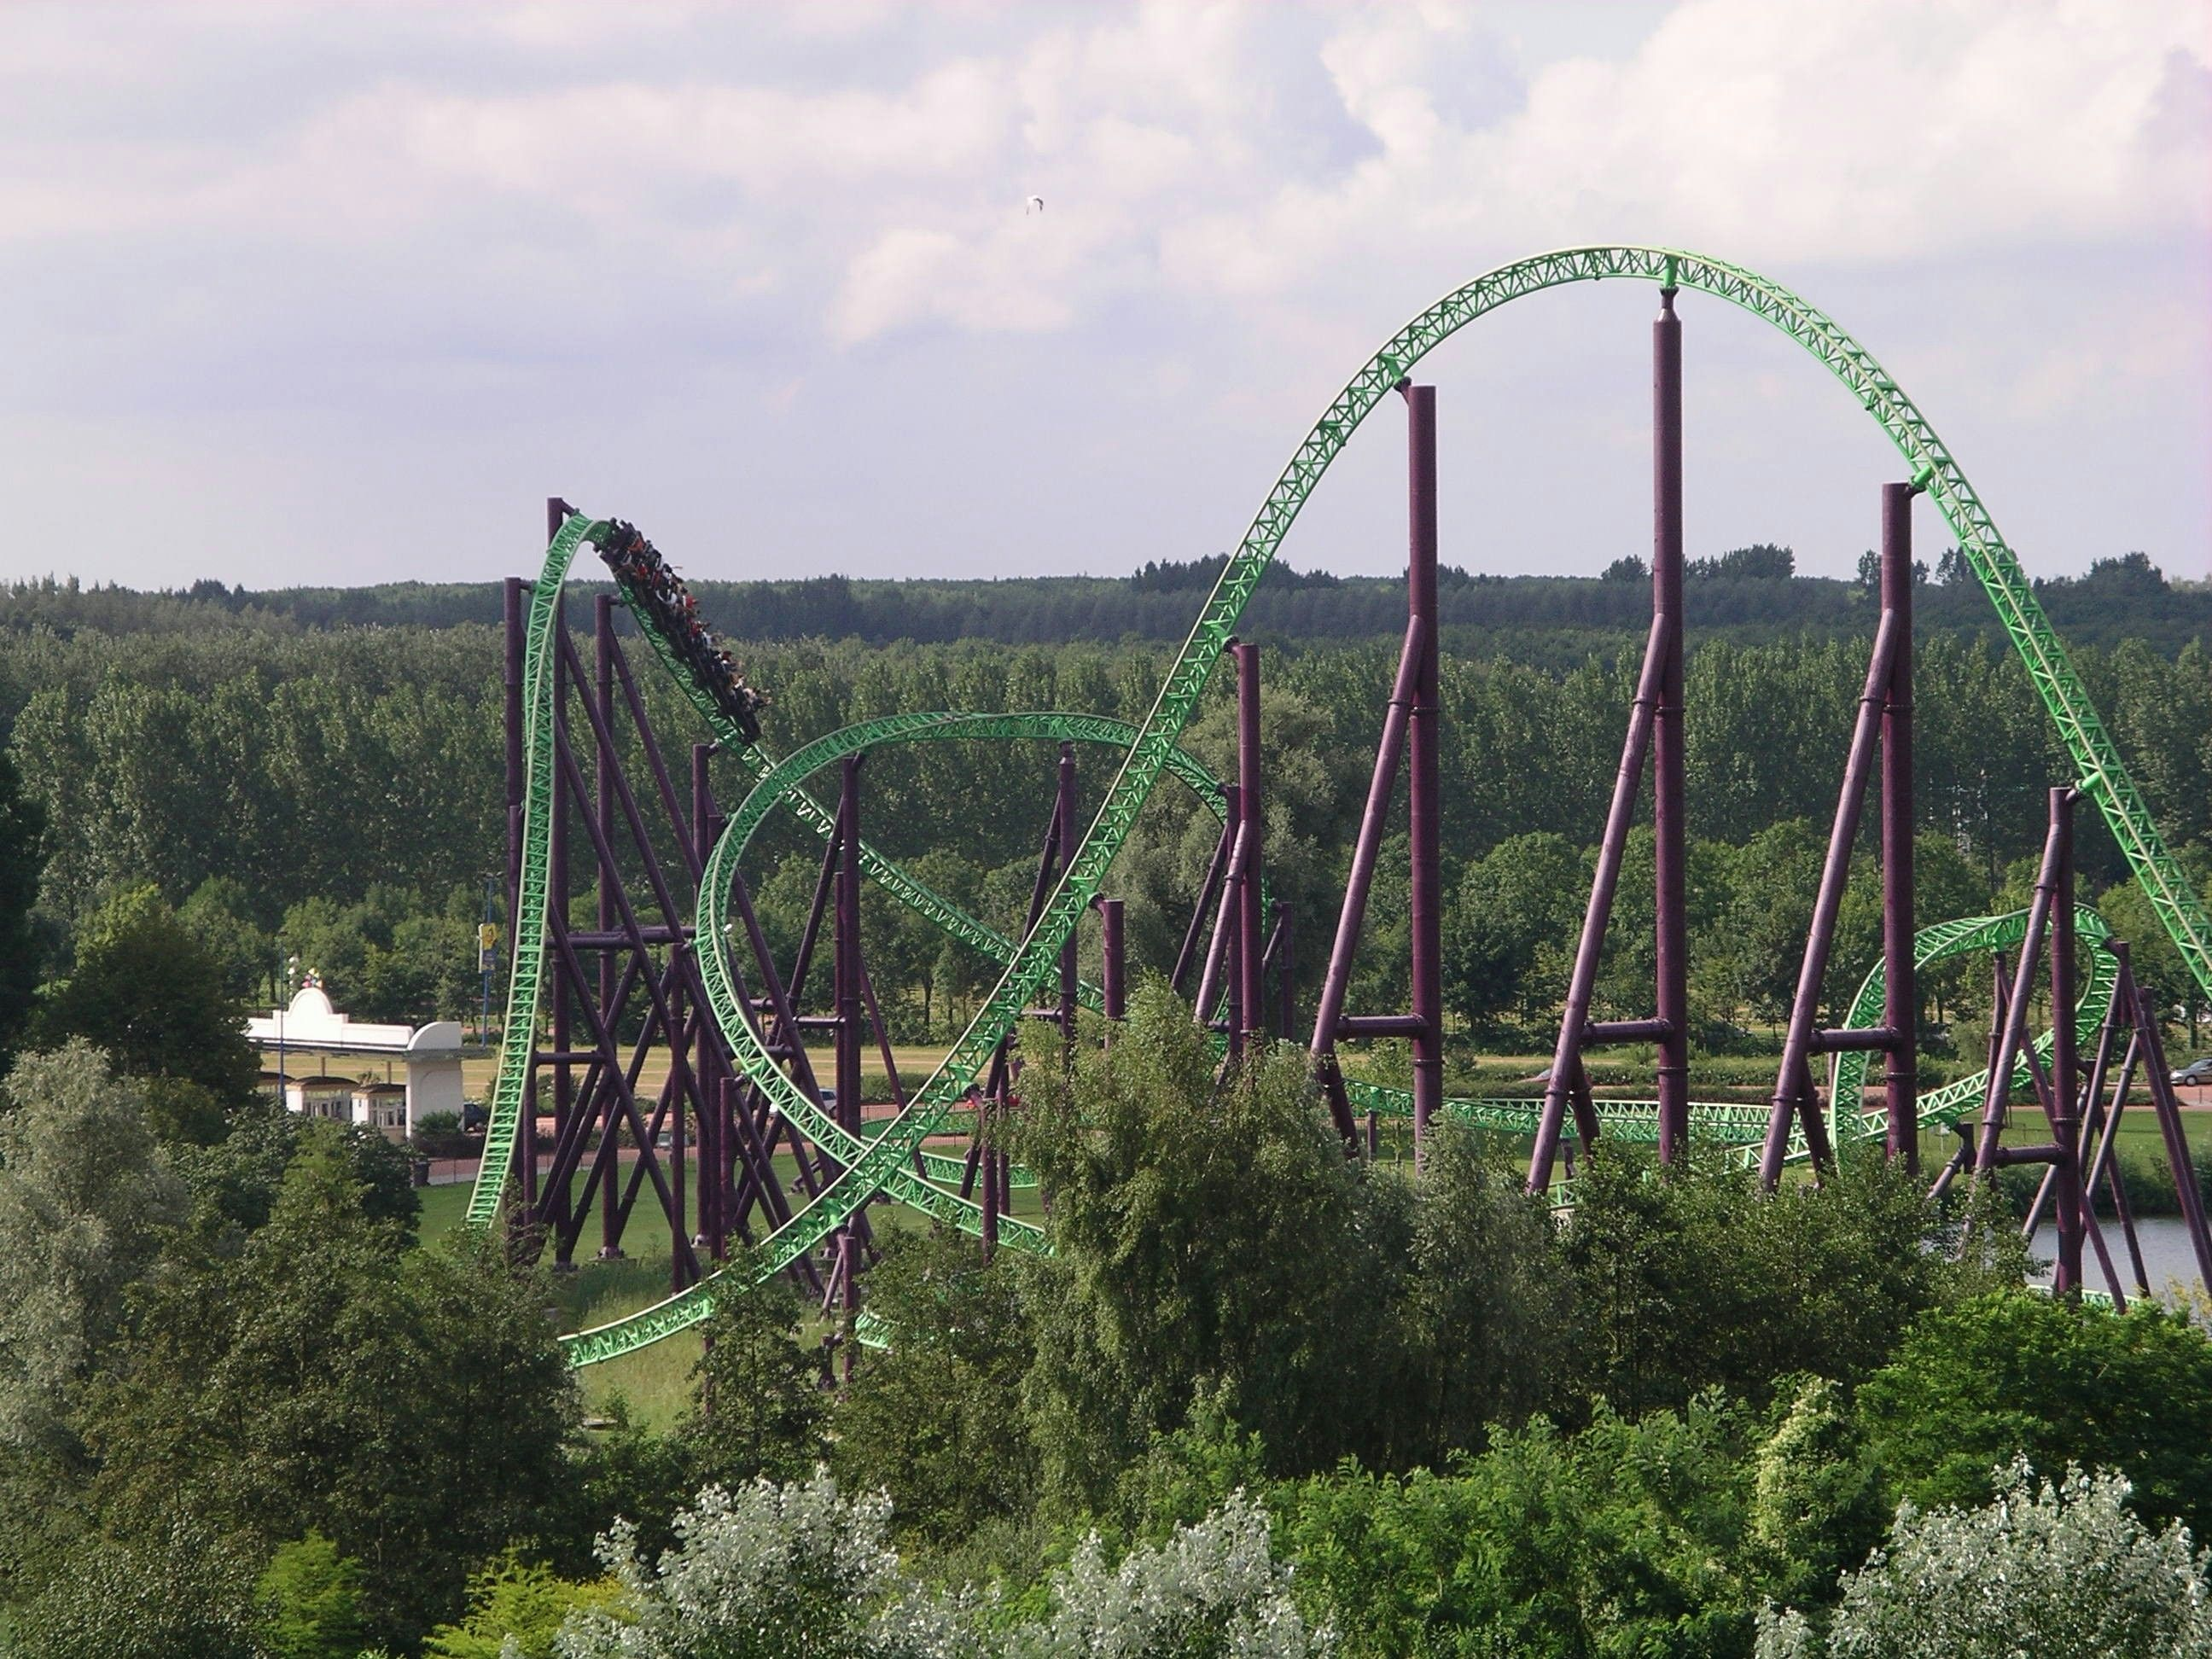 Stengel dive (massively overbanked turn) on Goliath ...